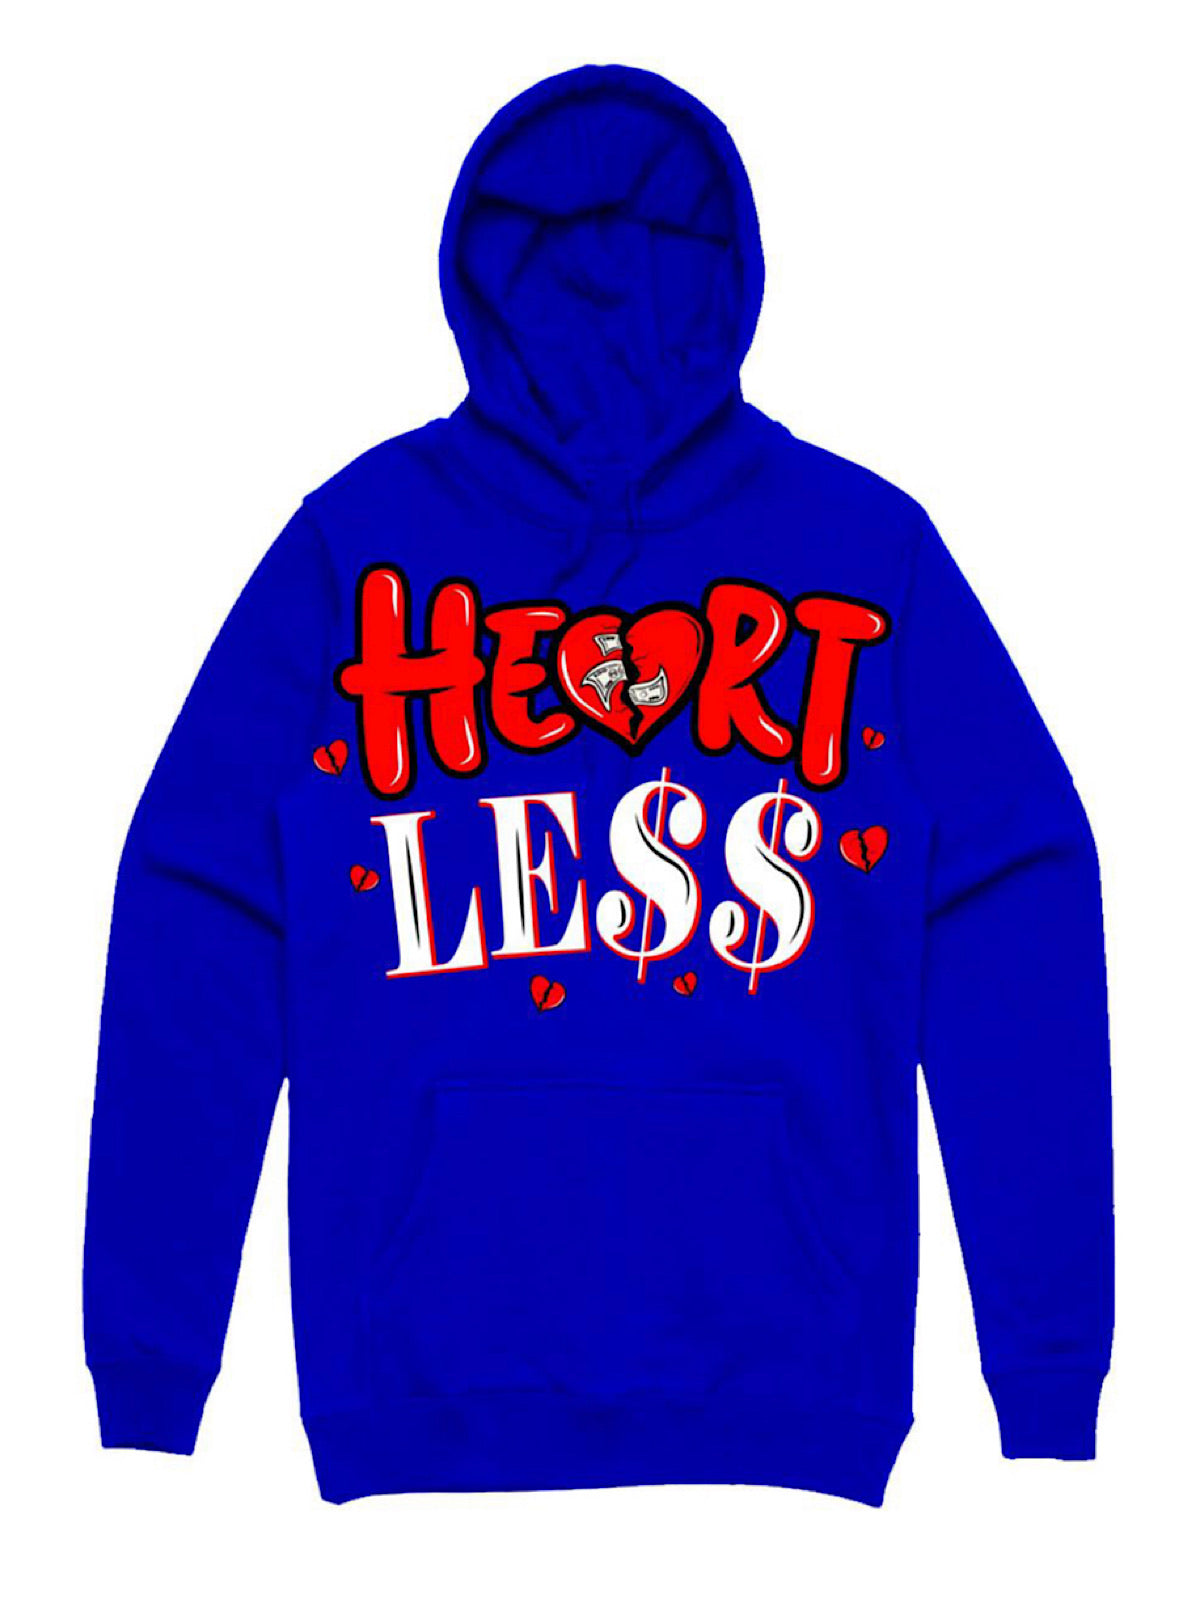 PG Apparel Hoodie - Heartless - Royal Blue